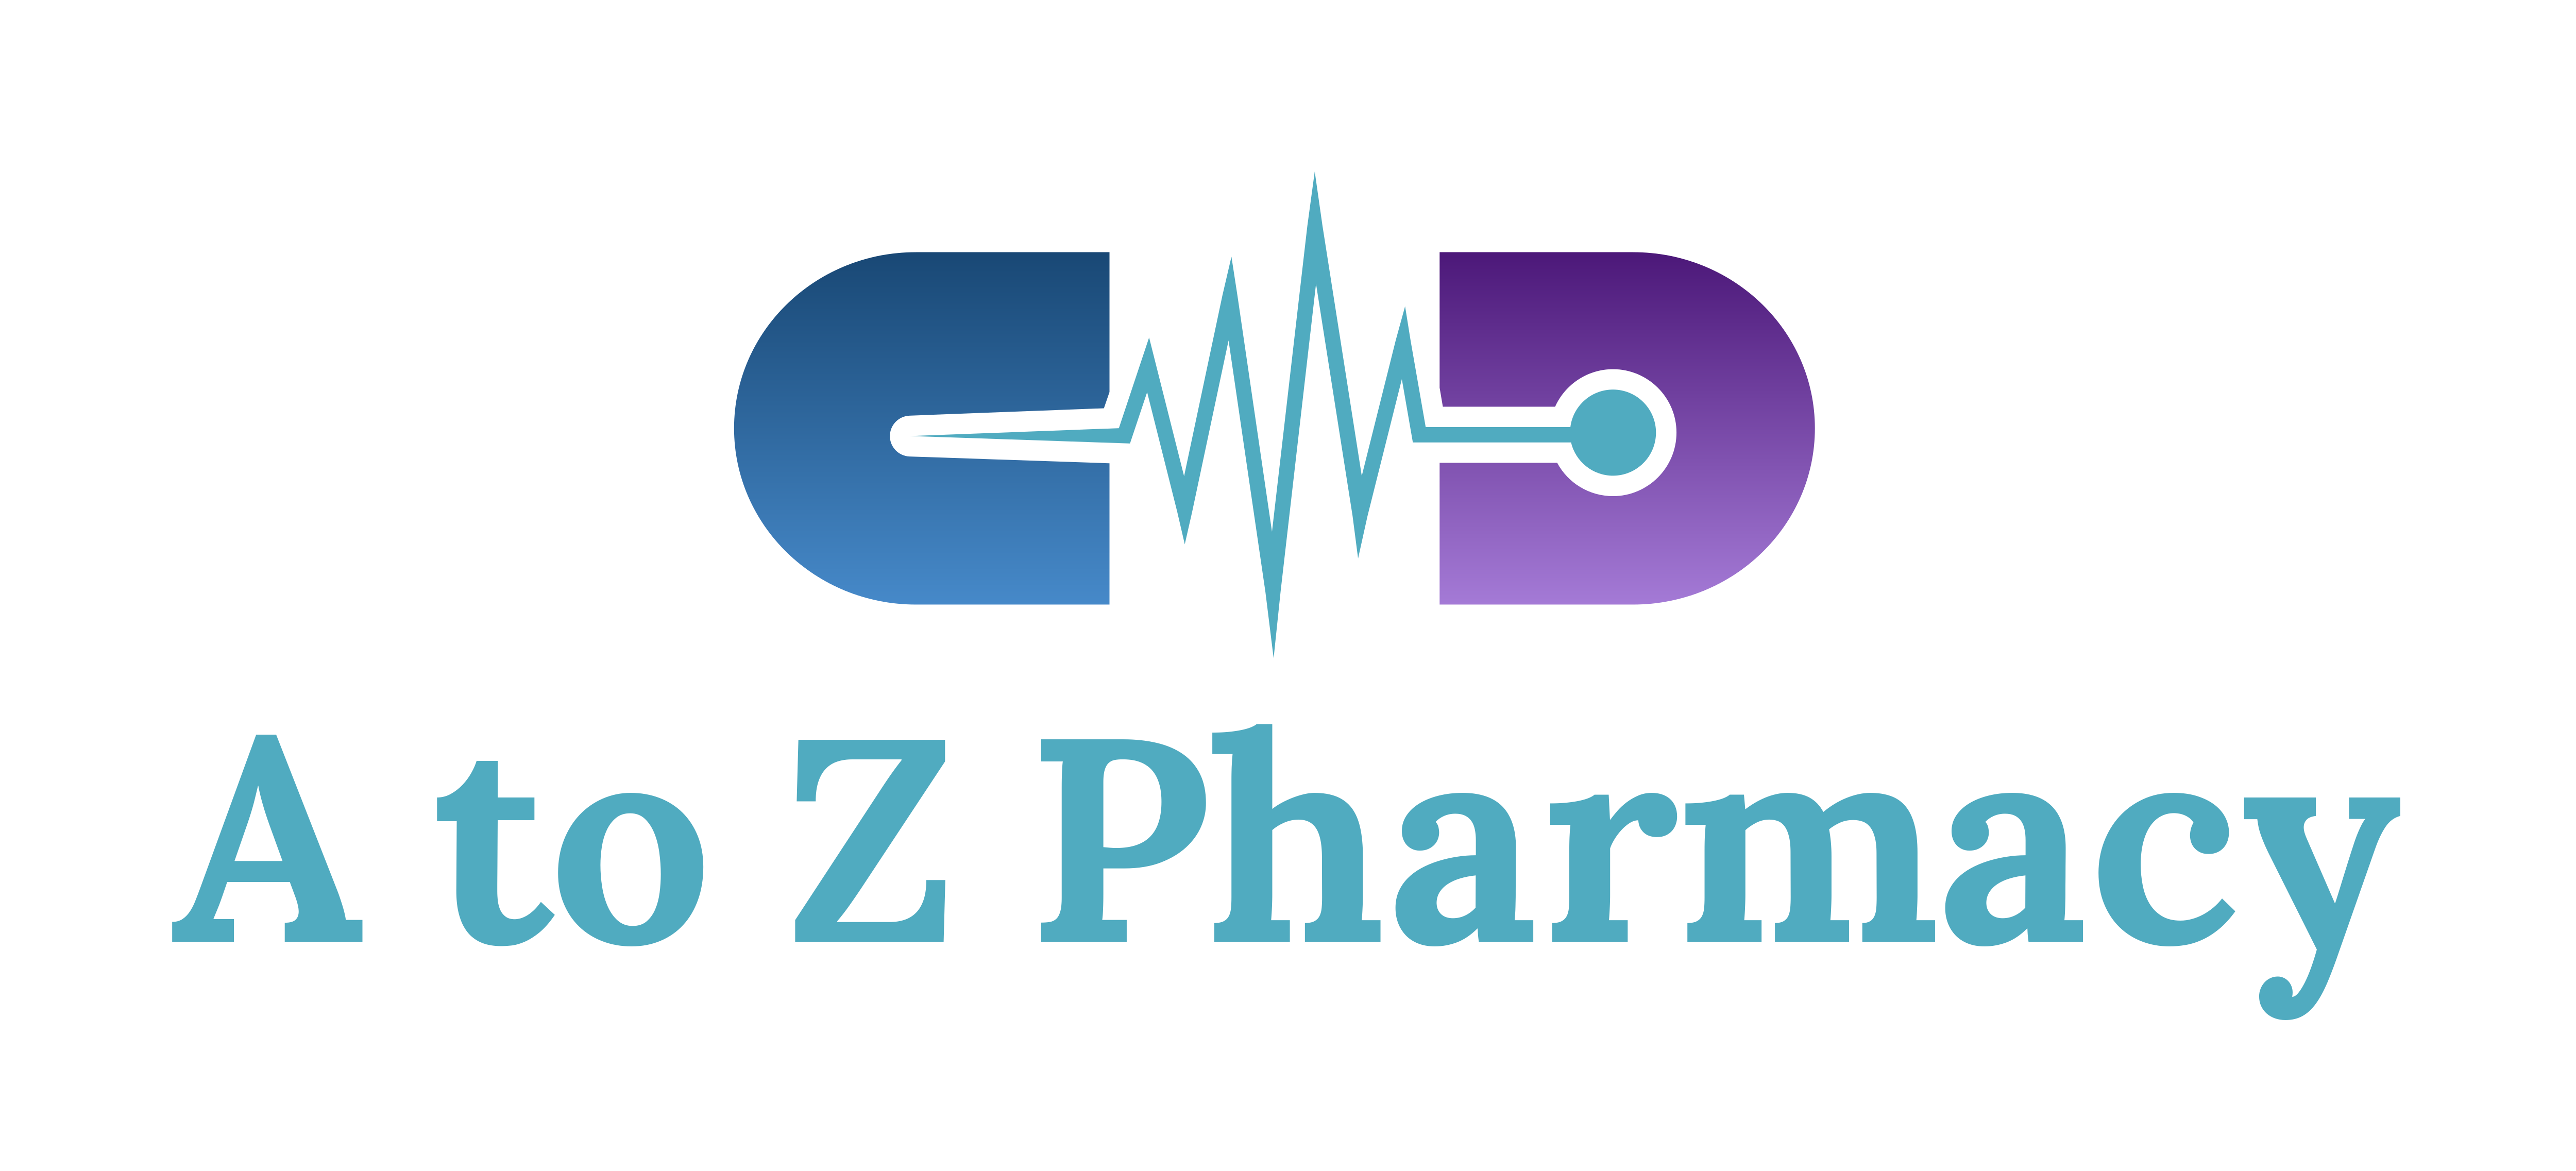 A to Z Pharmacy LLC